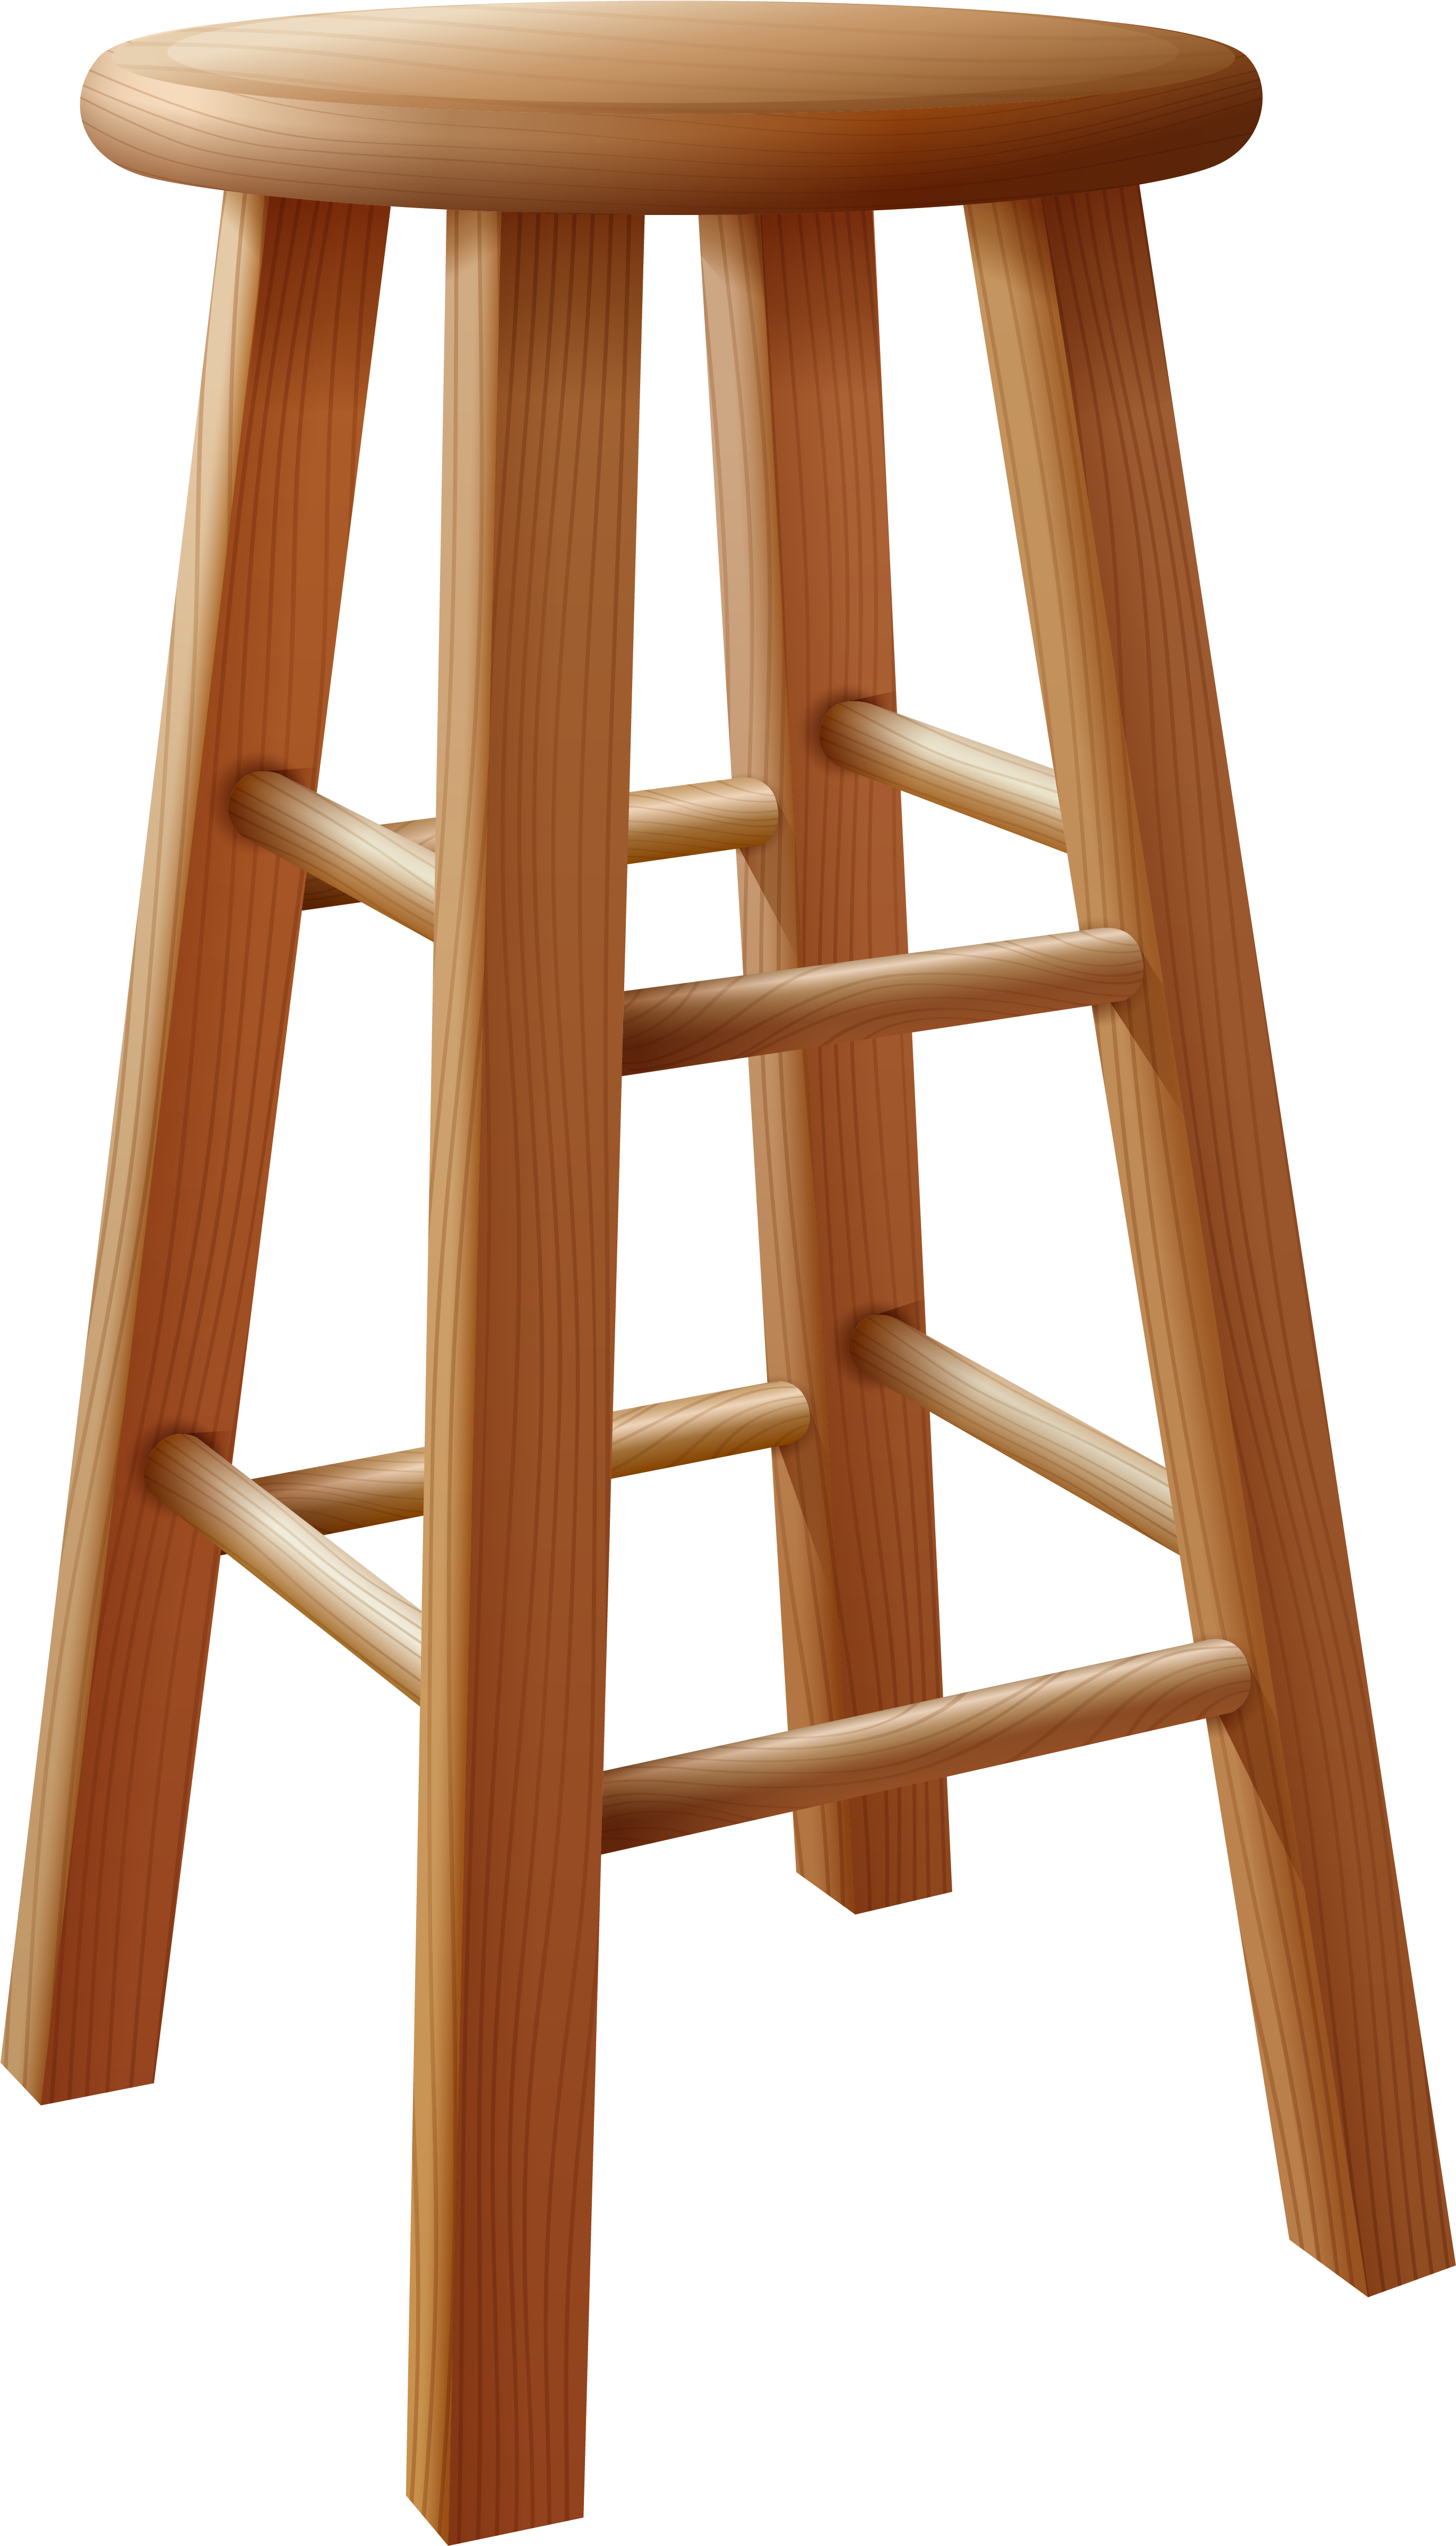 Made of wood download. Clipart chair wooden stool